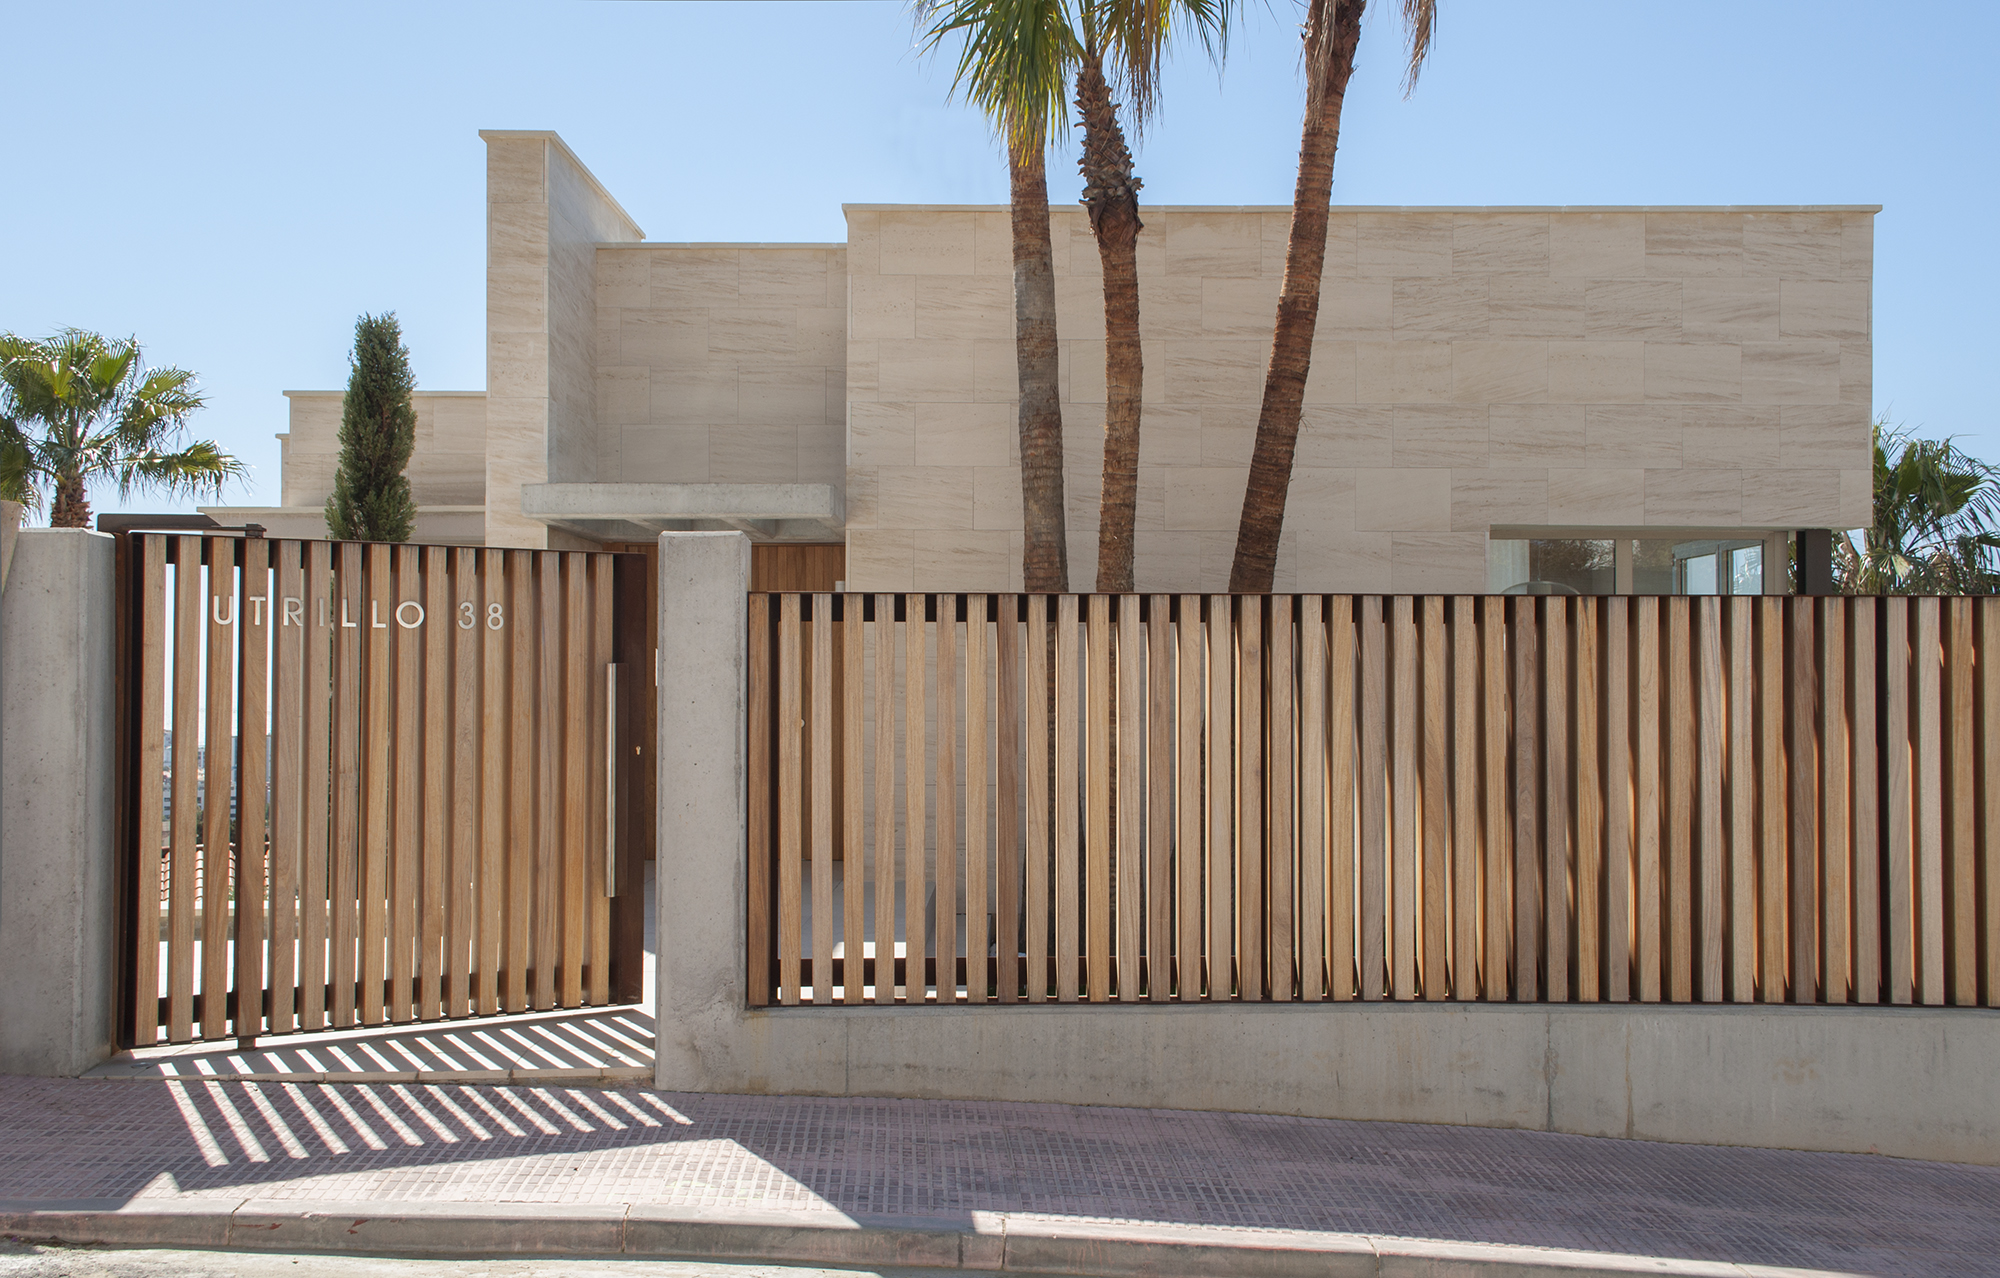 1-rardo-architects-houses-sitges-elevation-entrance-wood-fence